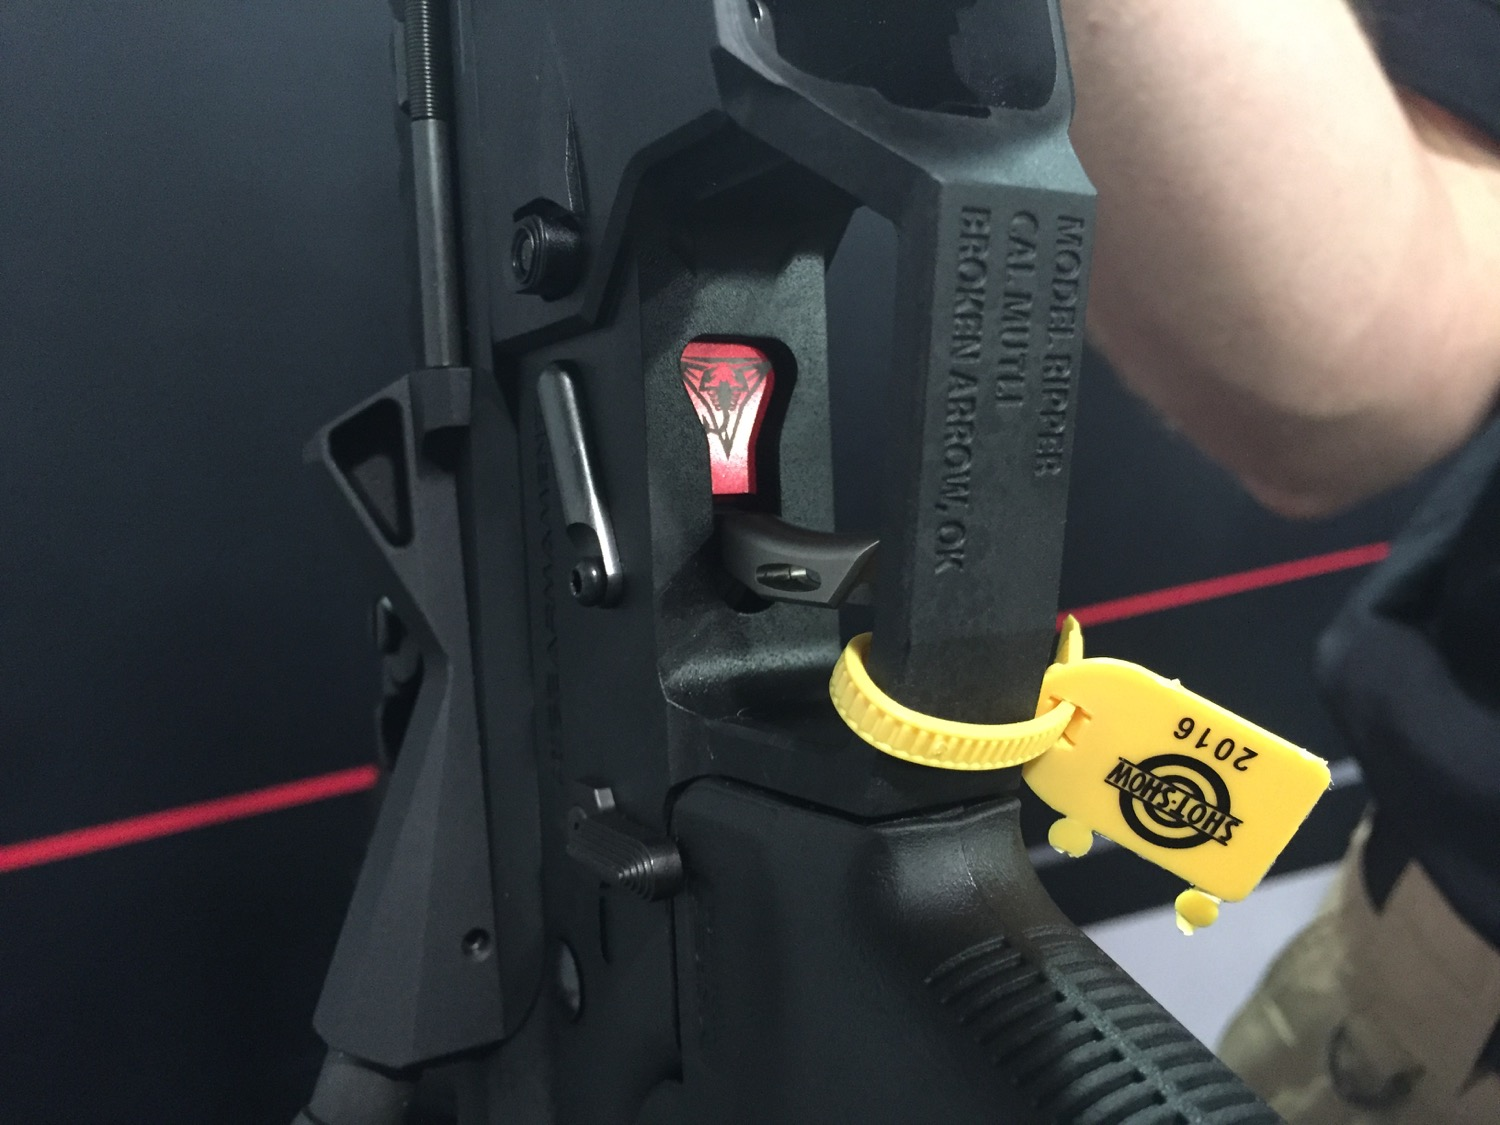 Cutout to see the logo on the trigger. Still my favorite trigger.